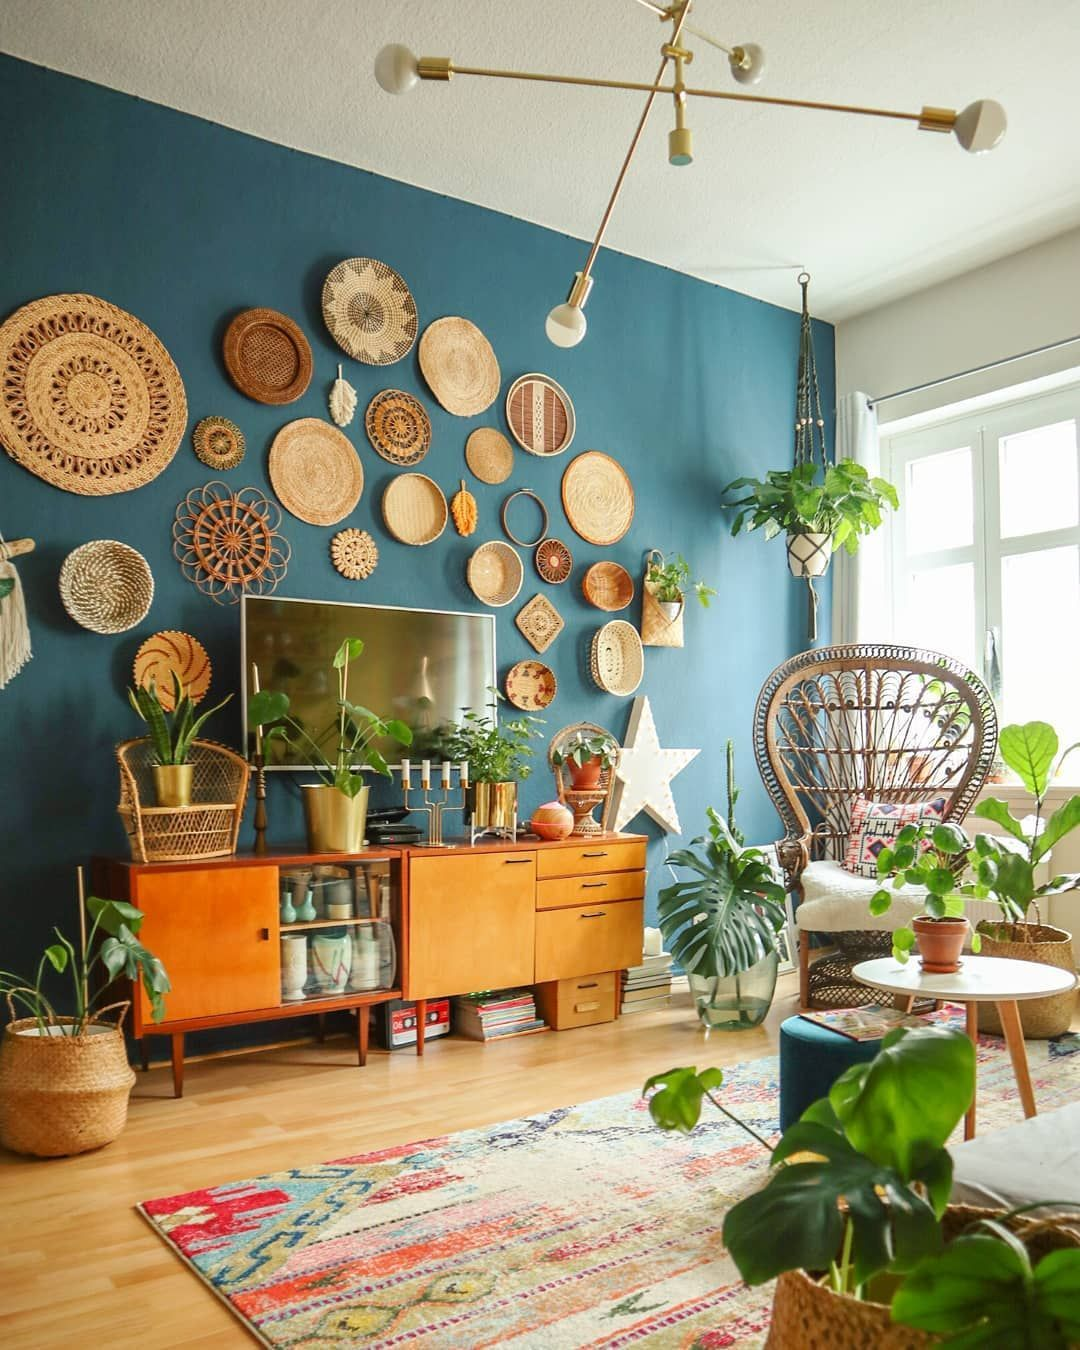 A Comprehensive Overview On Home Decoration In 2020 Stylish Home Decor Home Decor Bohemian Decor